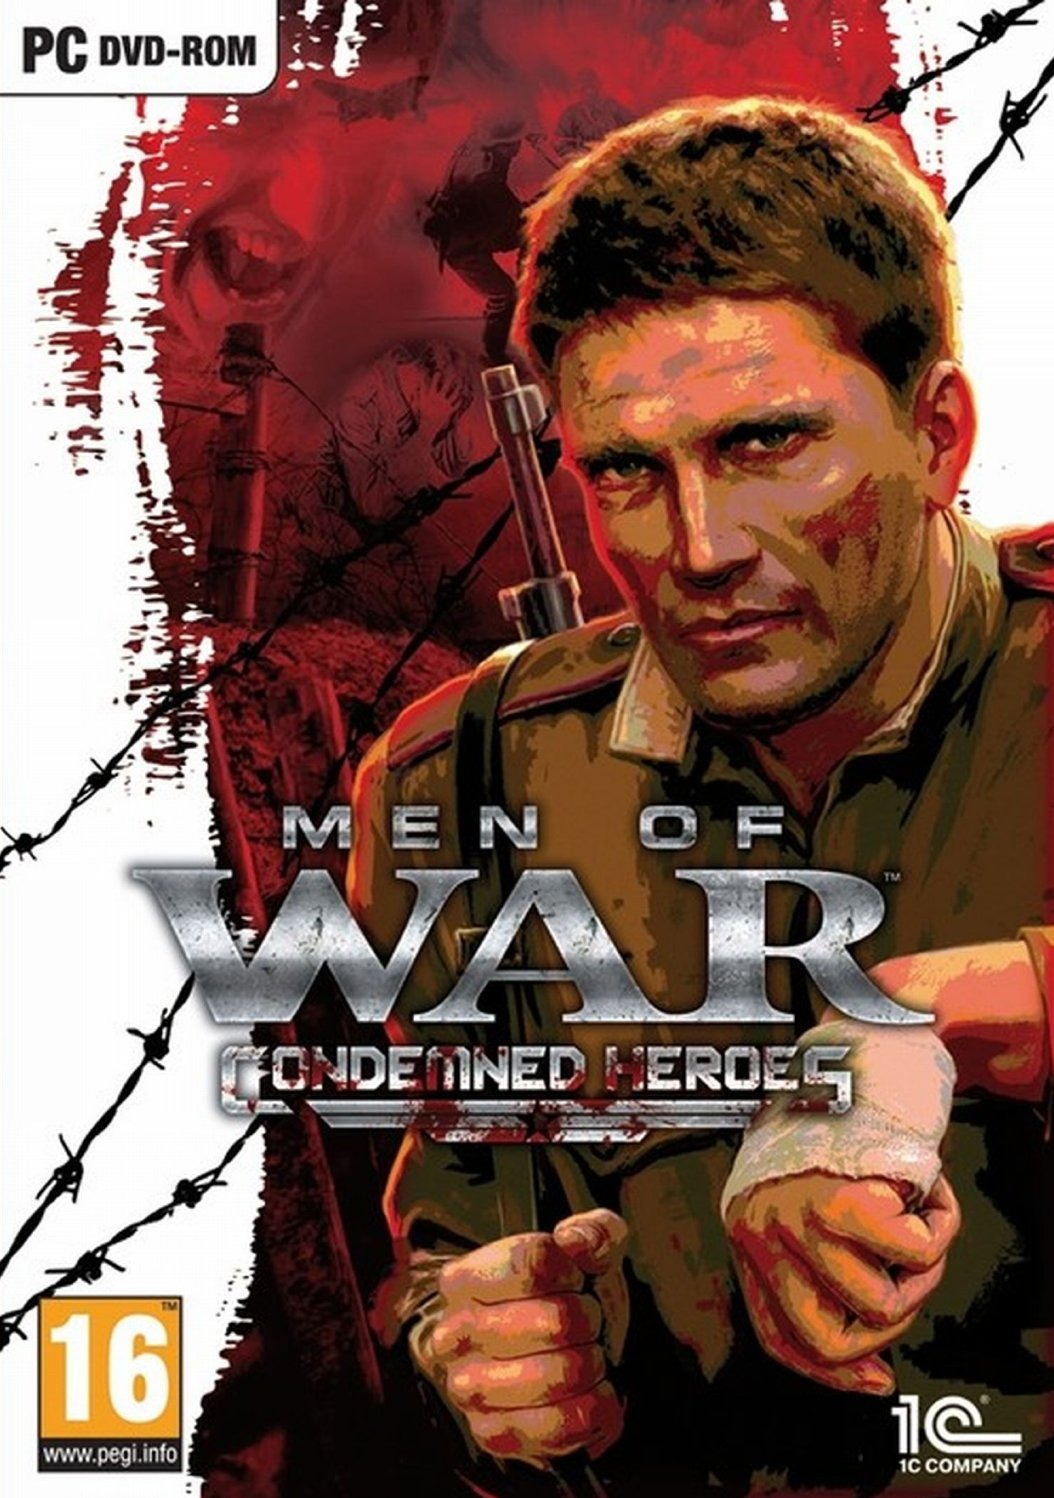 Men Of War : Condemned Heroes PC | Rapidshare Multi Lien